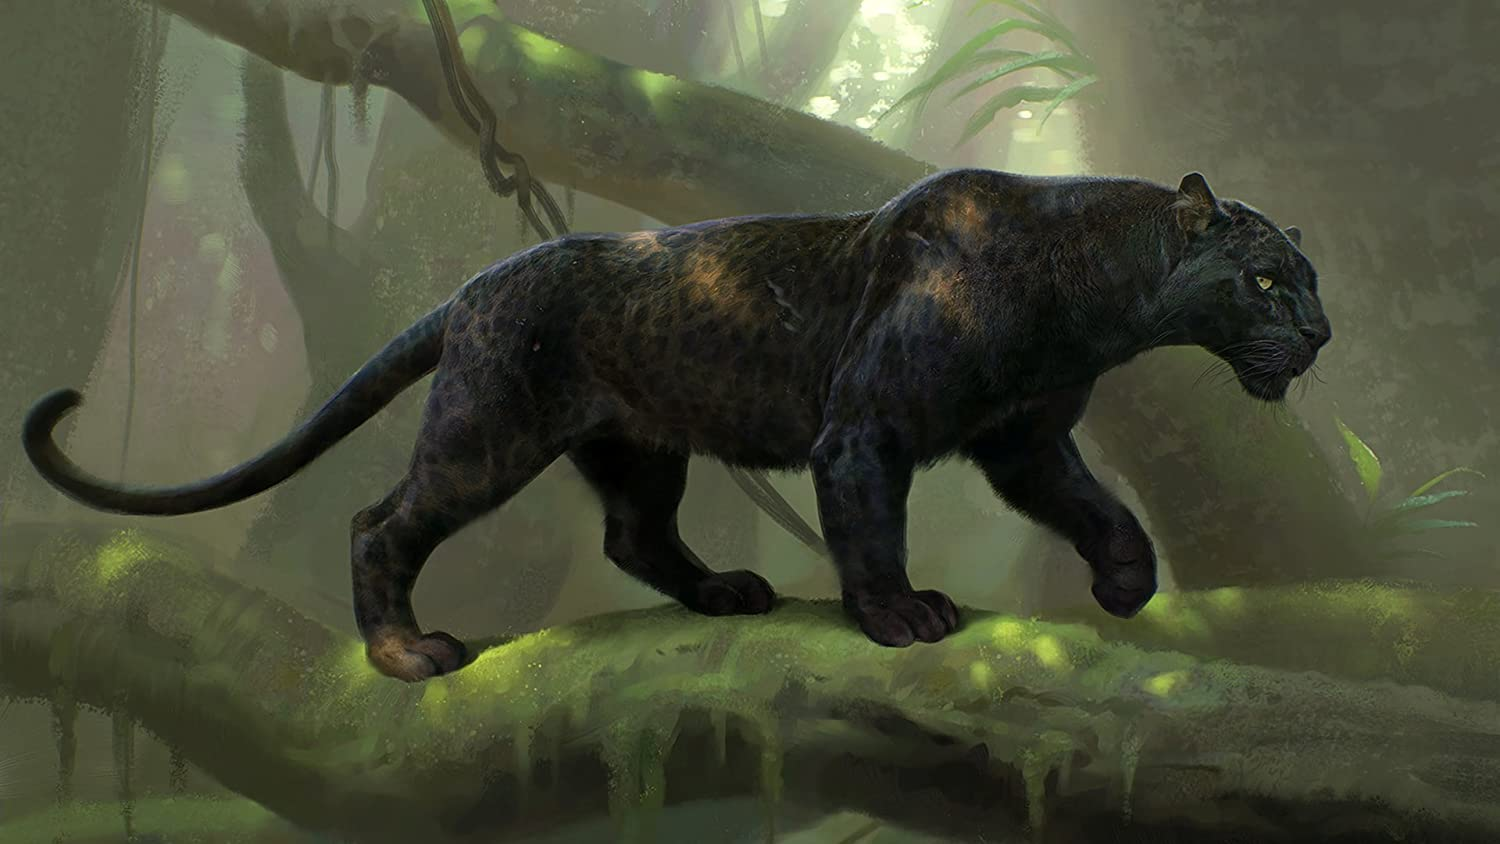 FREE P+P CHOOSE YOUR SIZE The Jungle Book Poster BAGHEERA Panther Movie 2016